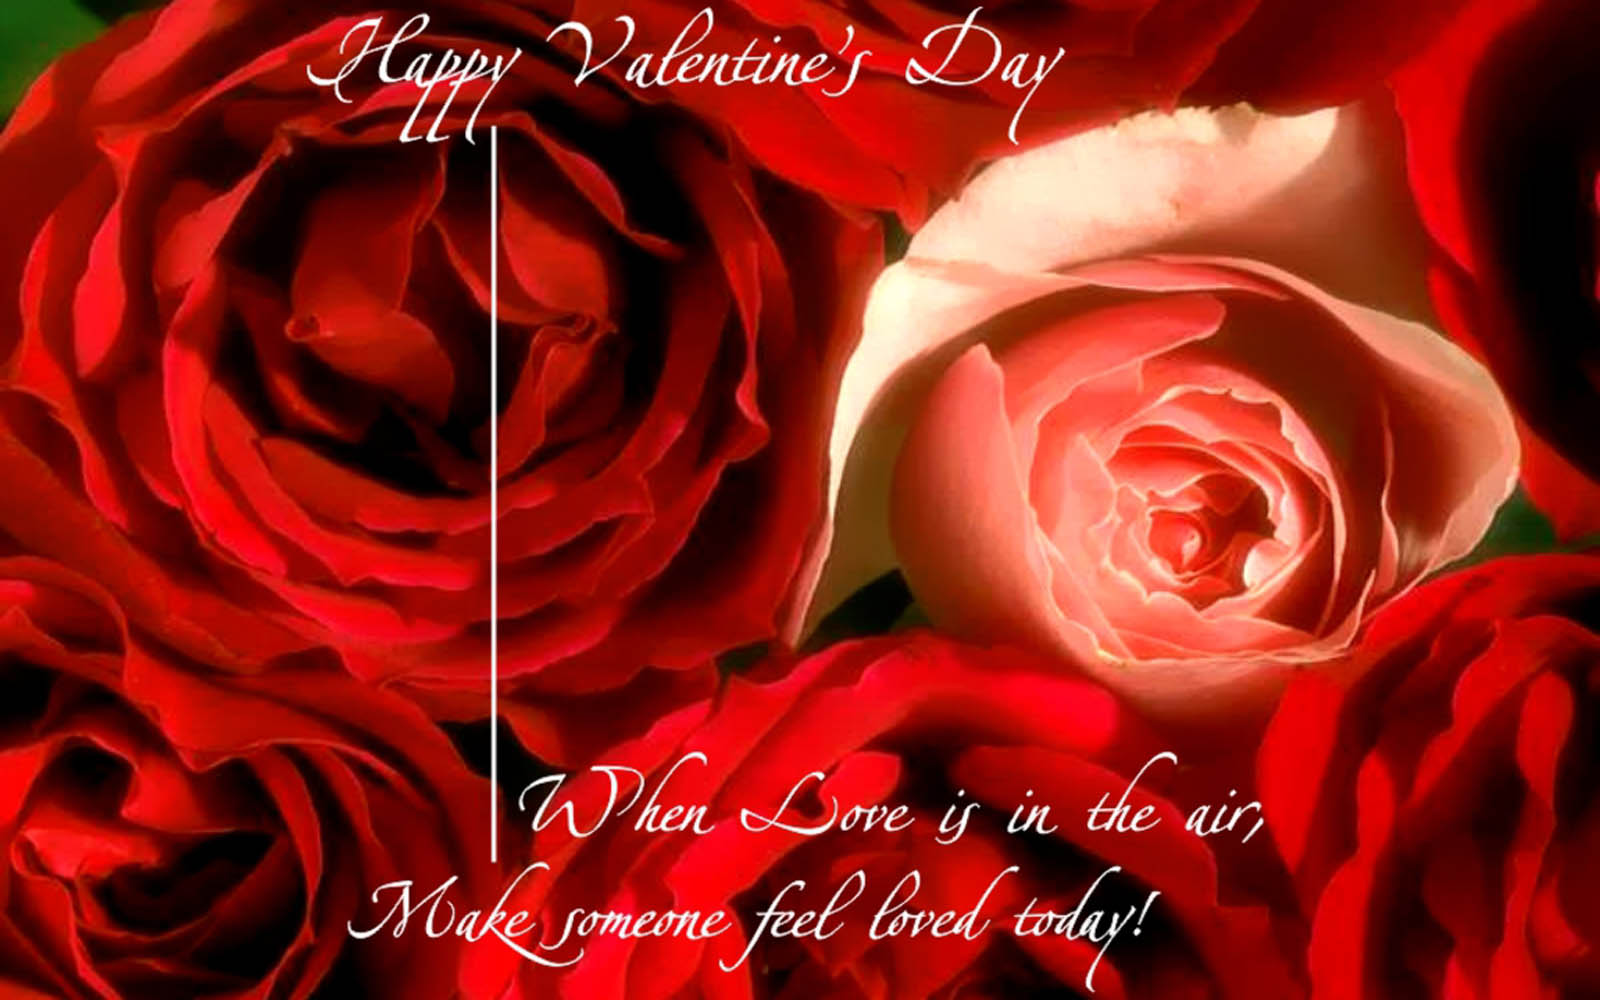 Wallpaper valentines day greetings wallpaper m4hsunfo